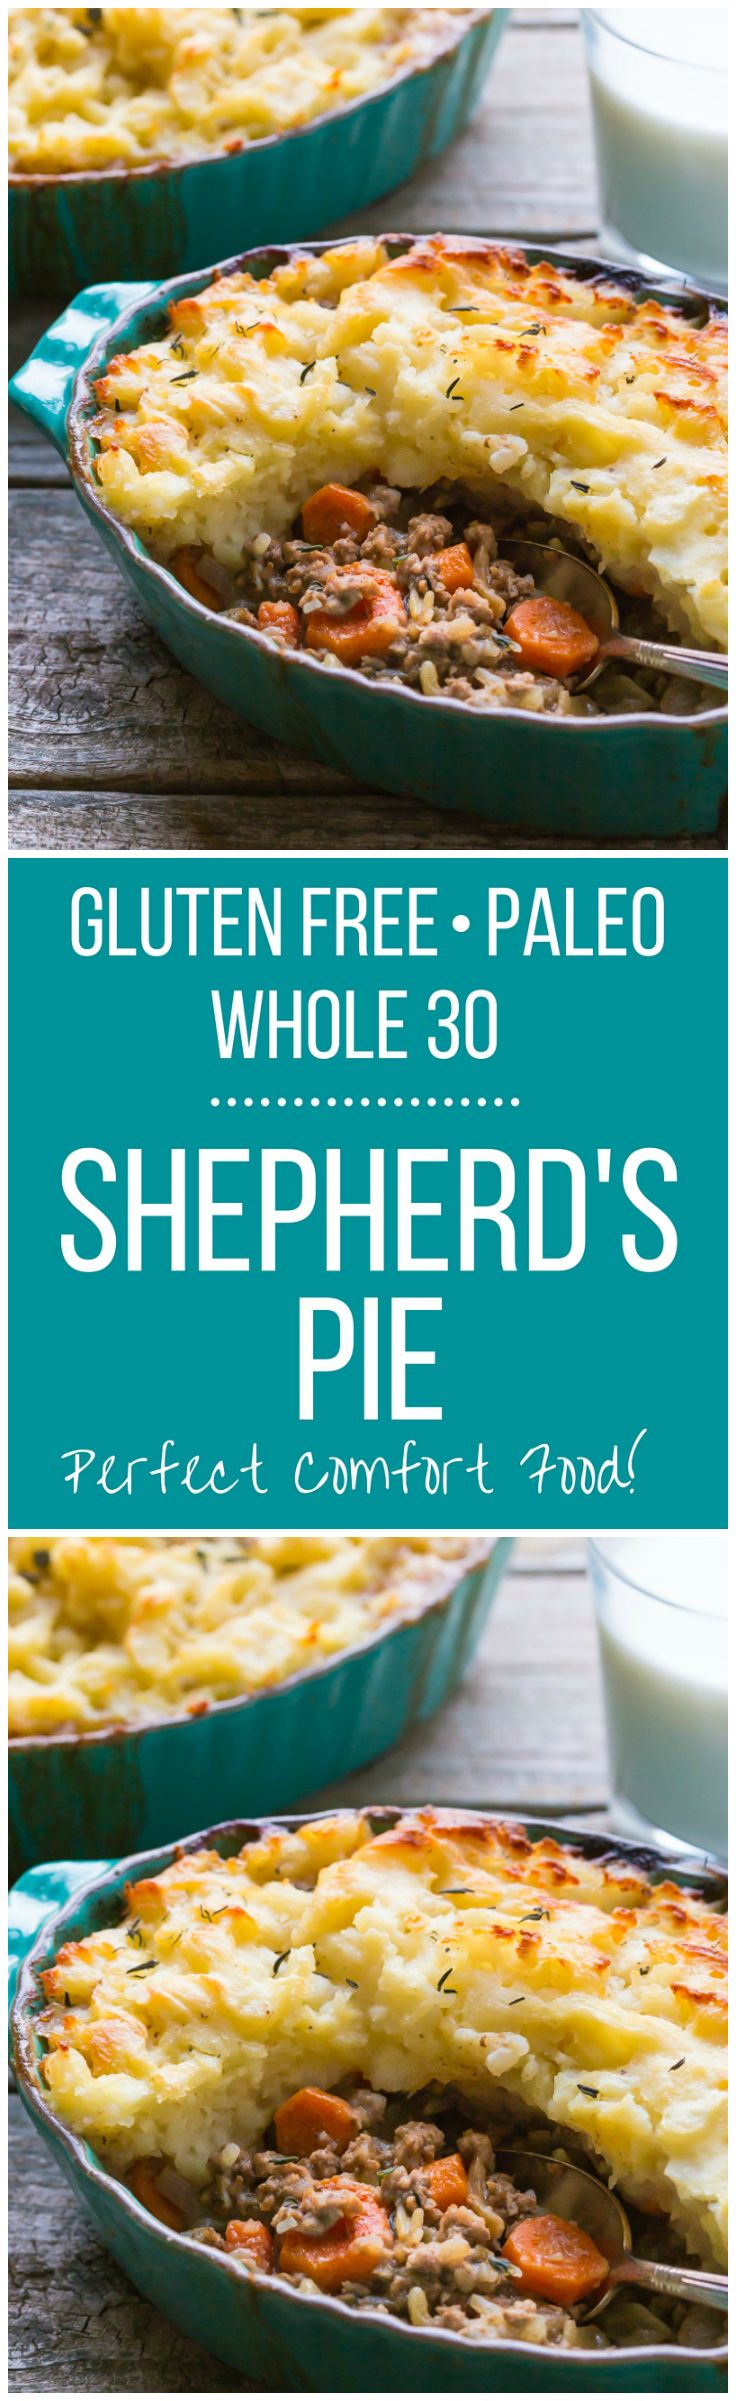 ... Gluten Free Shepherds Pie | Recipe | Whole 30, Gluten free and Gluten